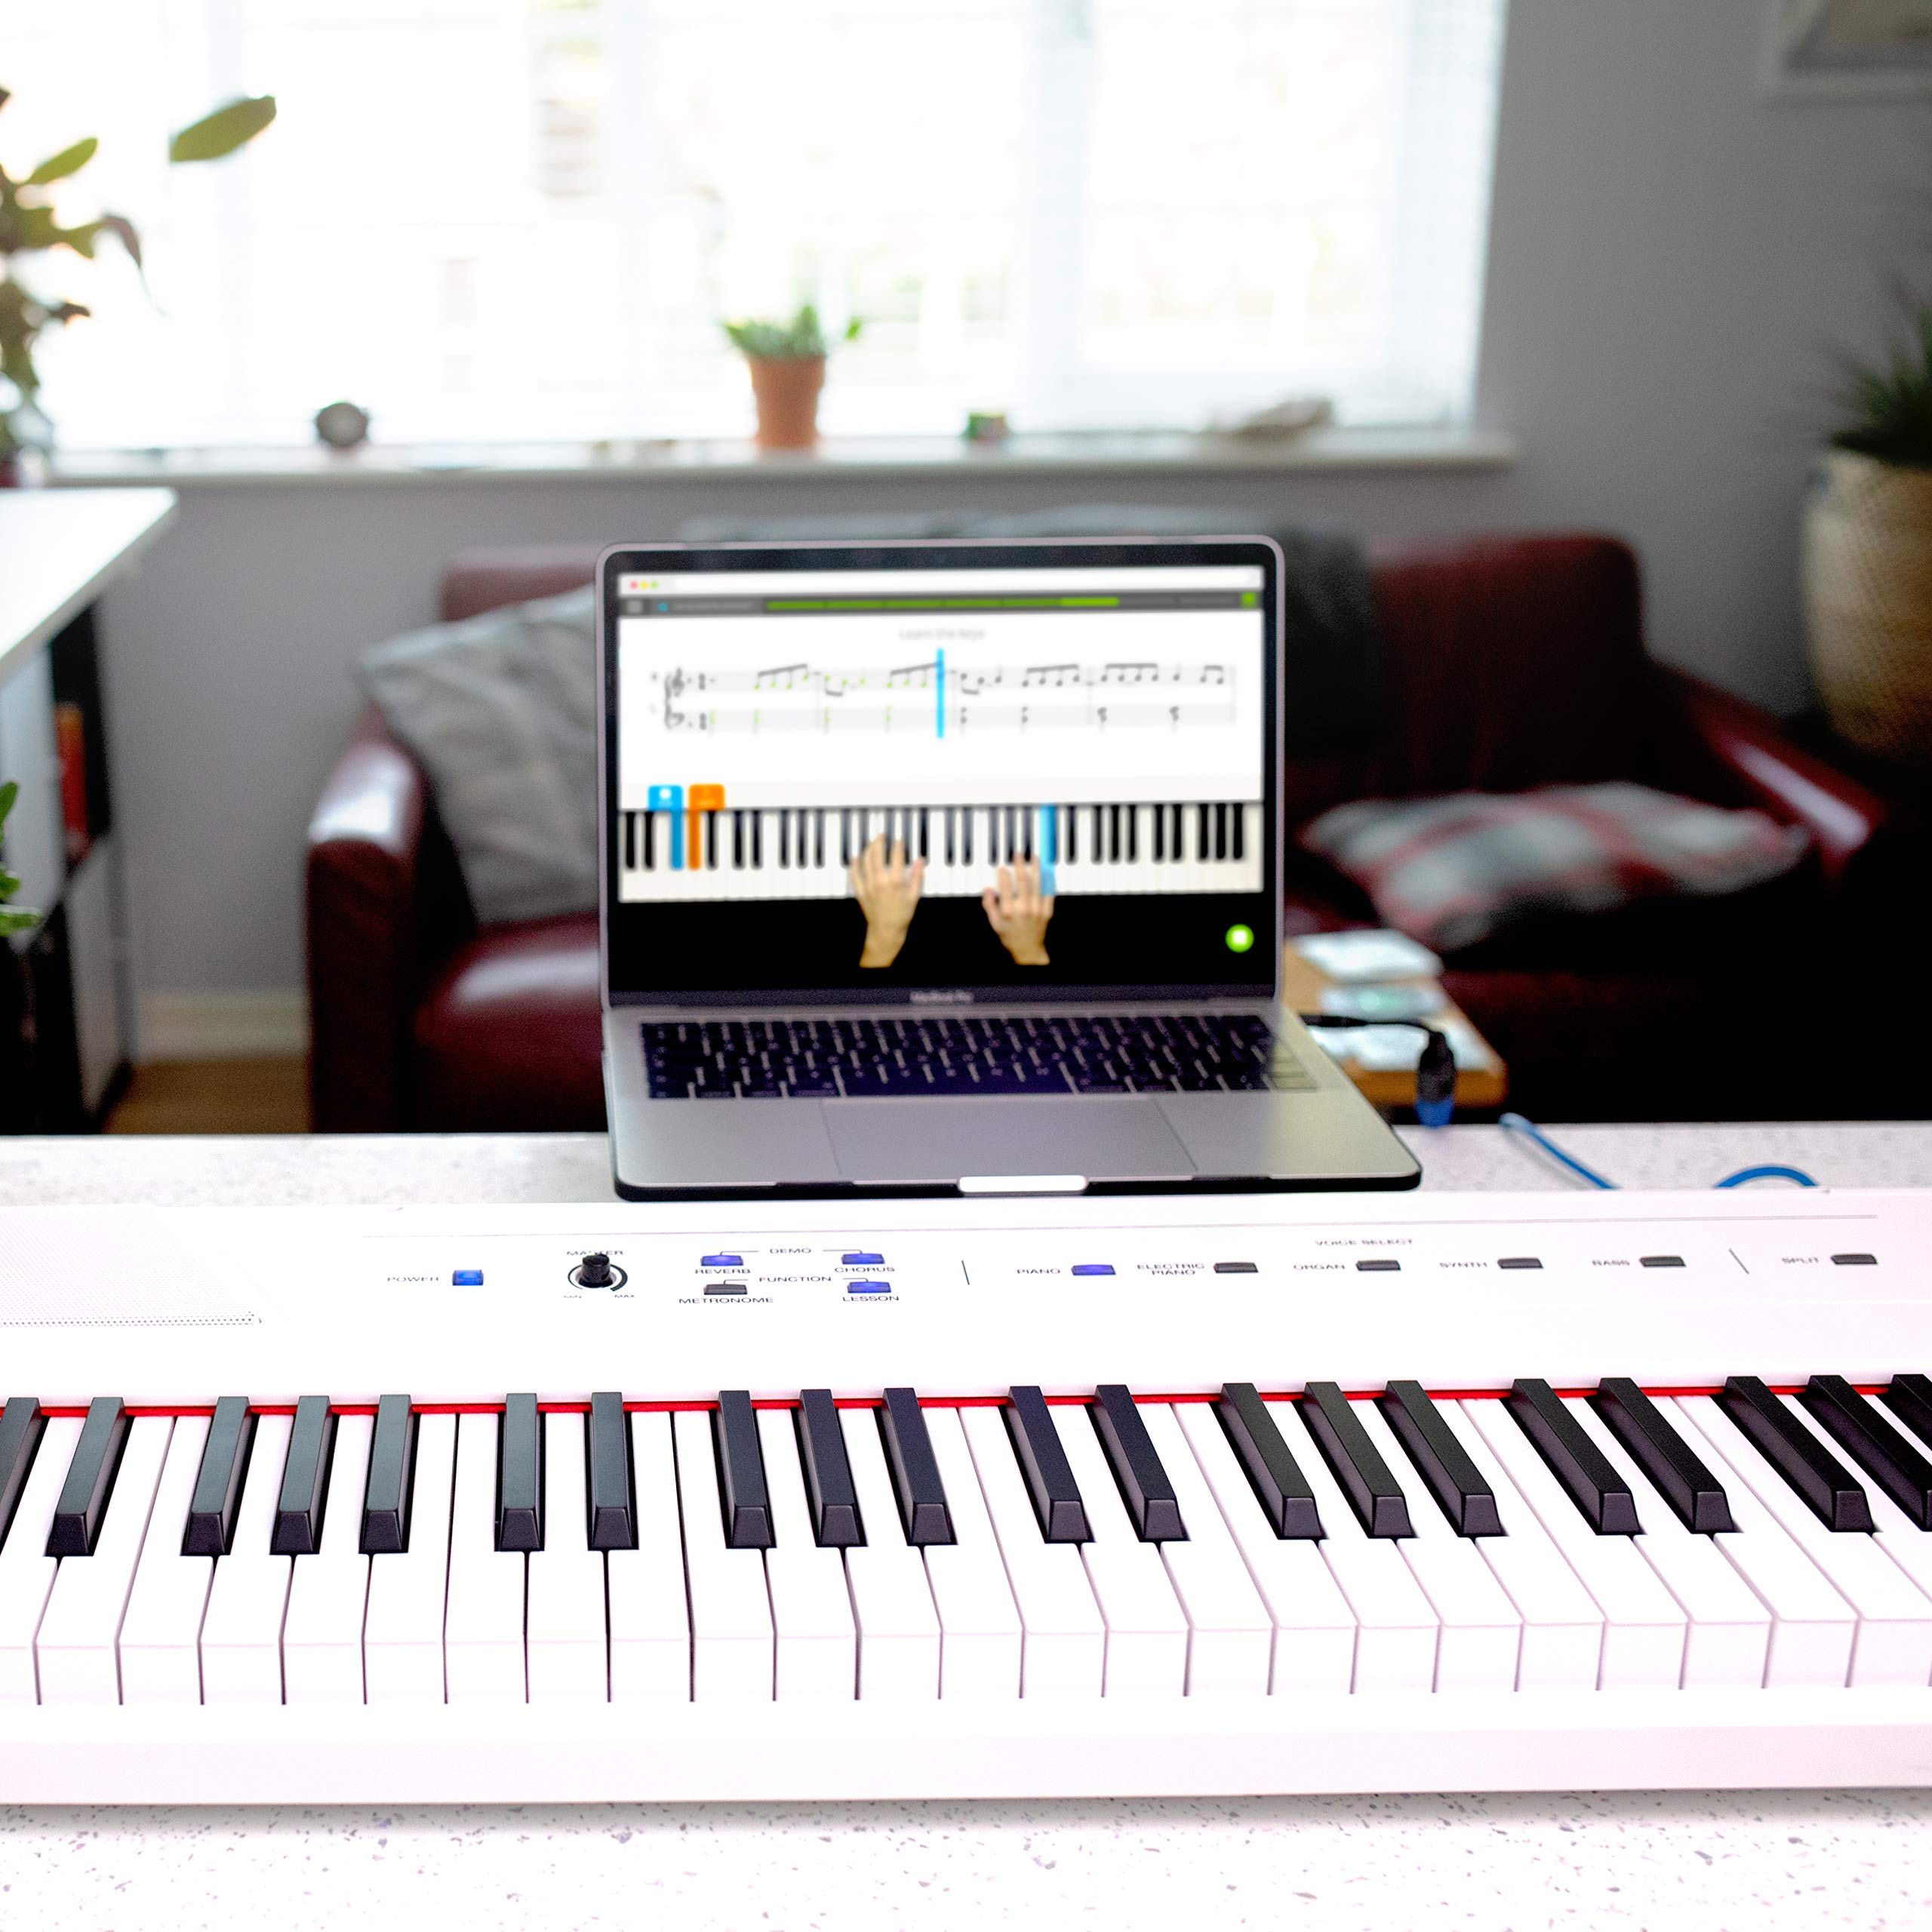 Alesis Recital White | 88-Key Digital Piano / Electronic Keyboard with Full-Size Semi-Weighted Keys, Power Supply, Built-In Speakers and 5 Premium Voices by Alesis (Image #16)